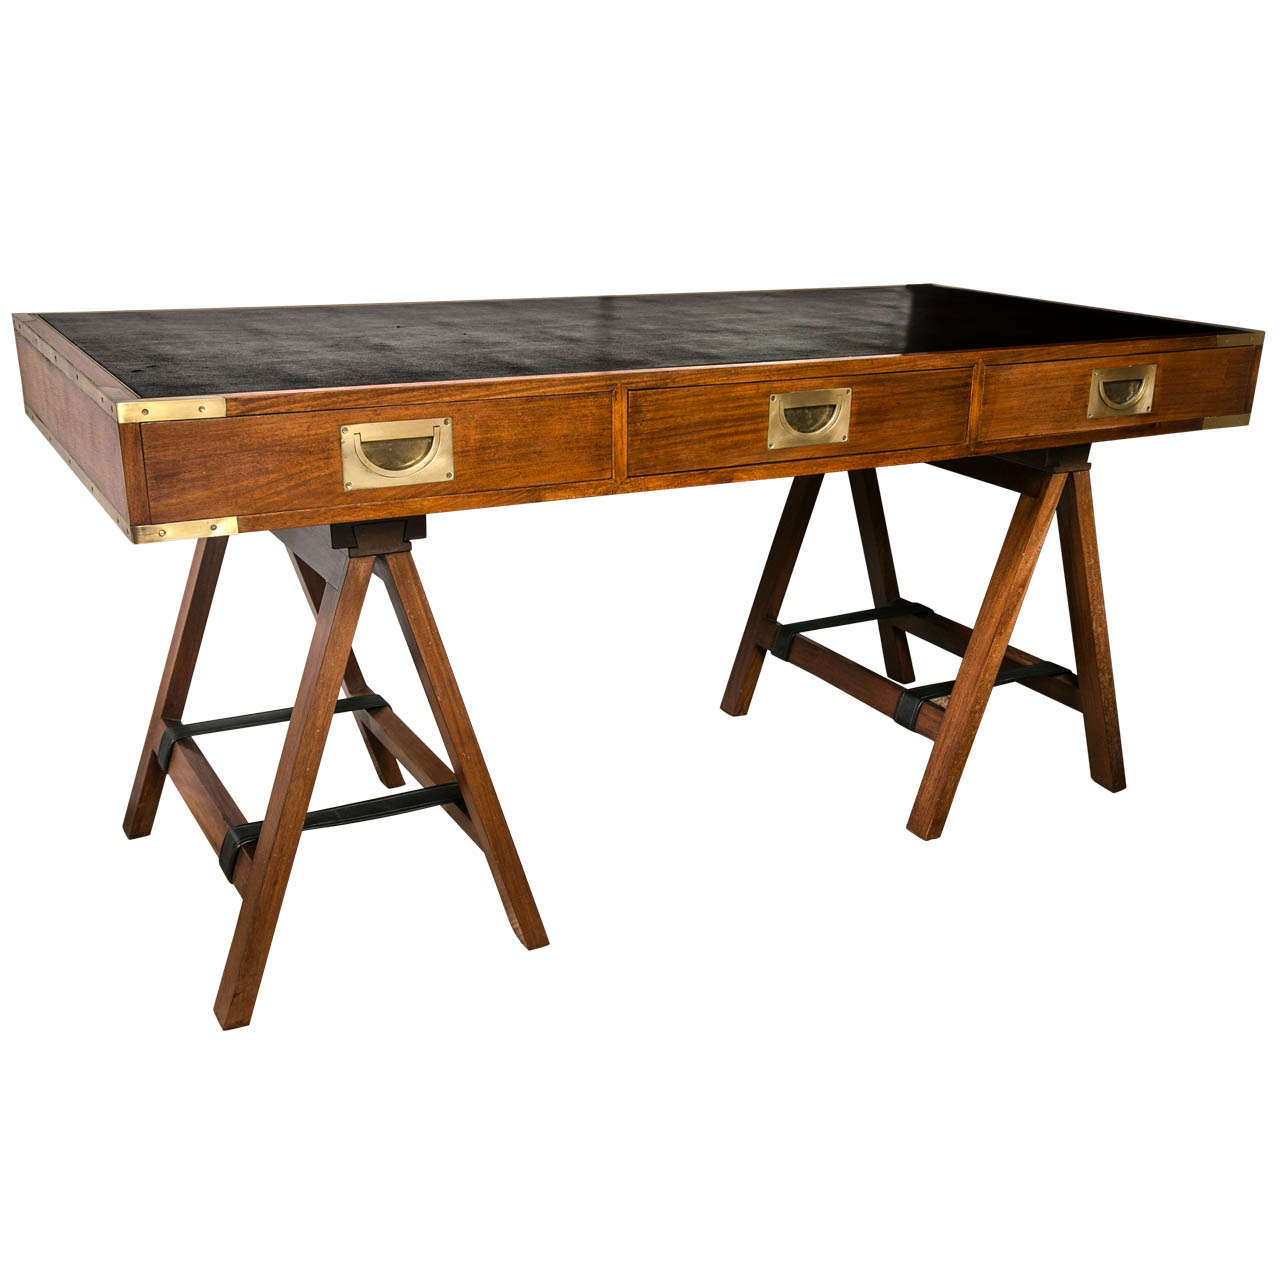 1960 S Paduck Wood Campaign Desk With Br Hardware And Leather Top For